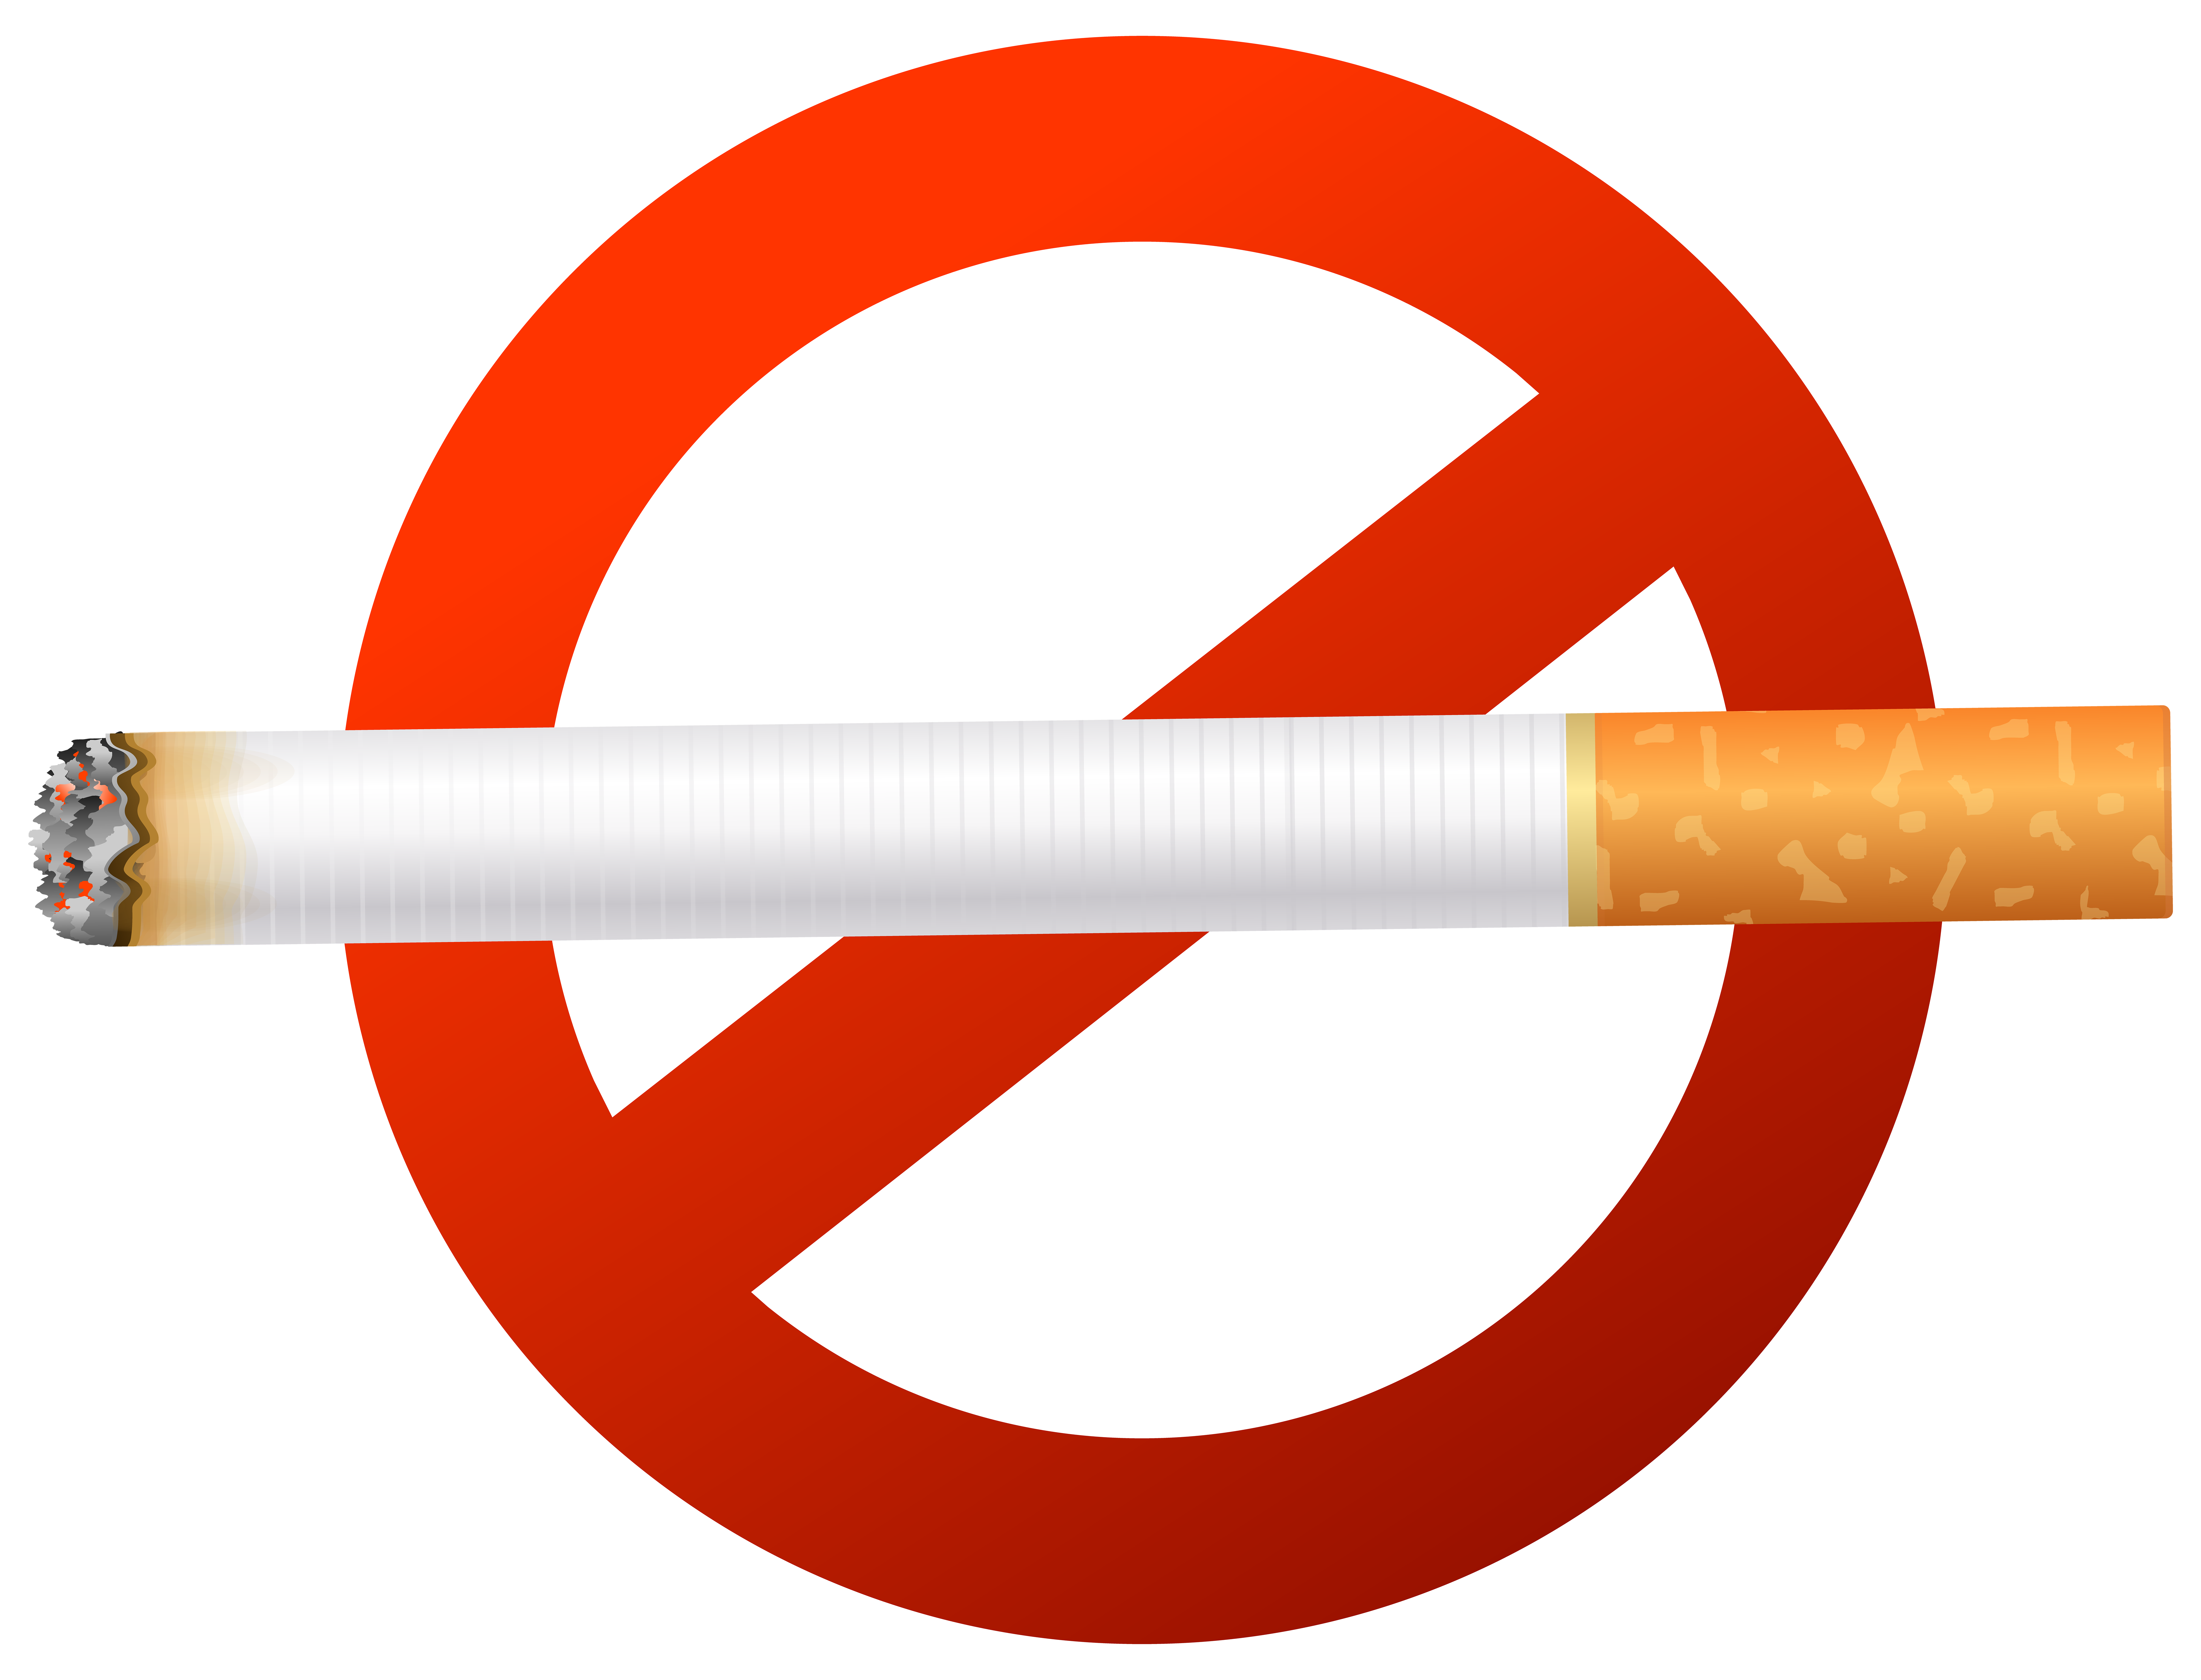 No clipart png. Smoking sign clip art